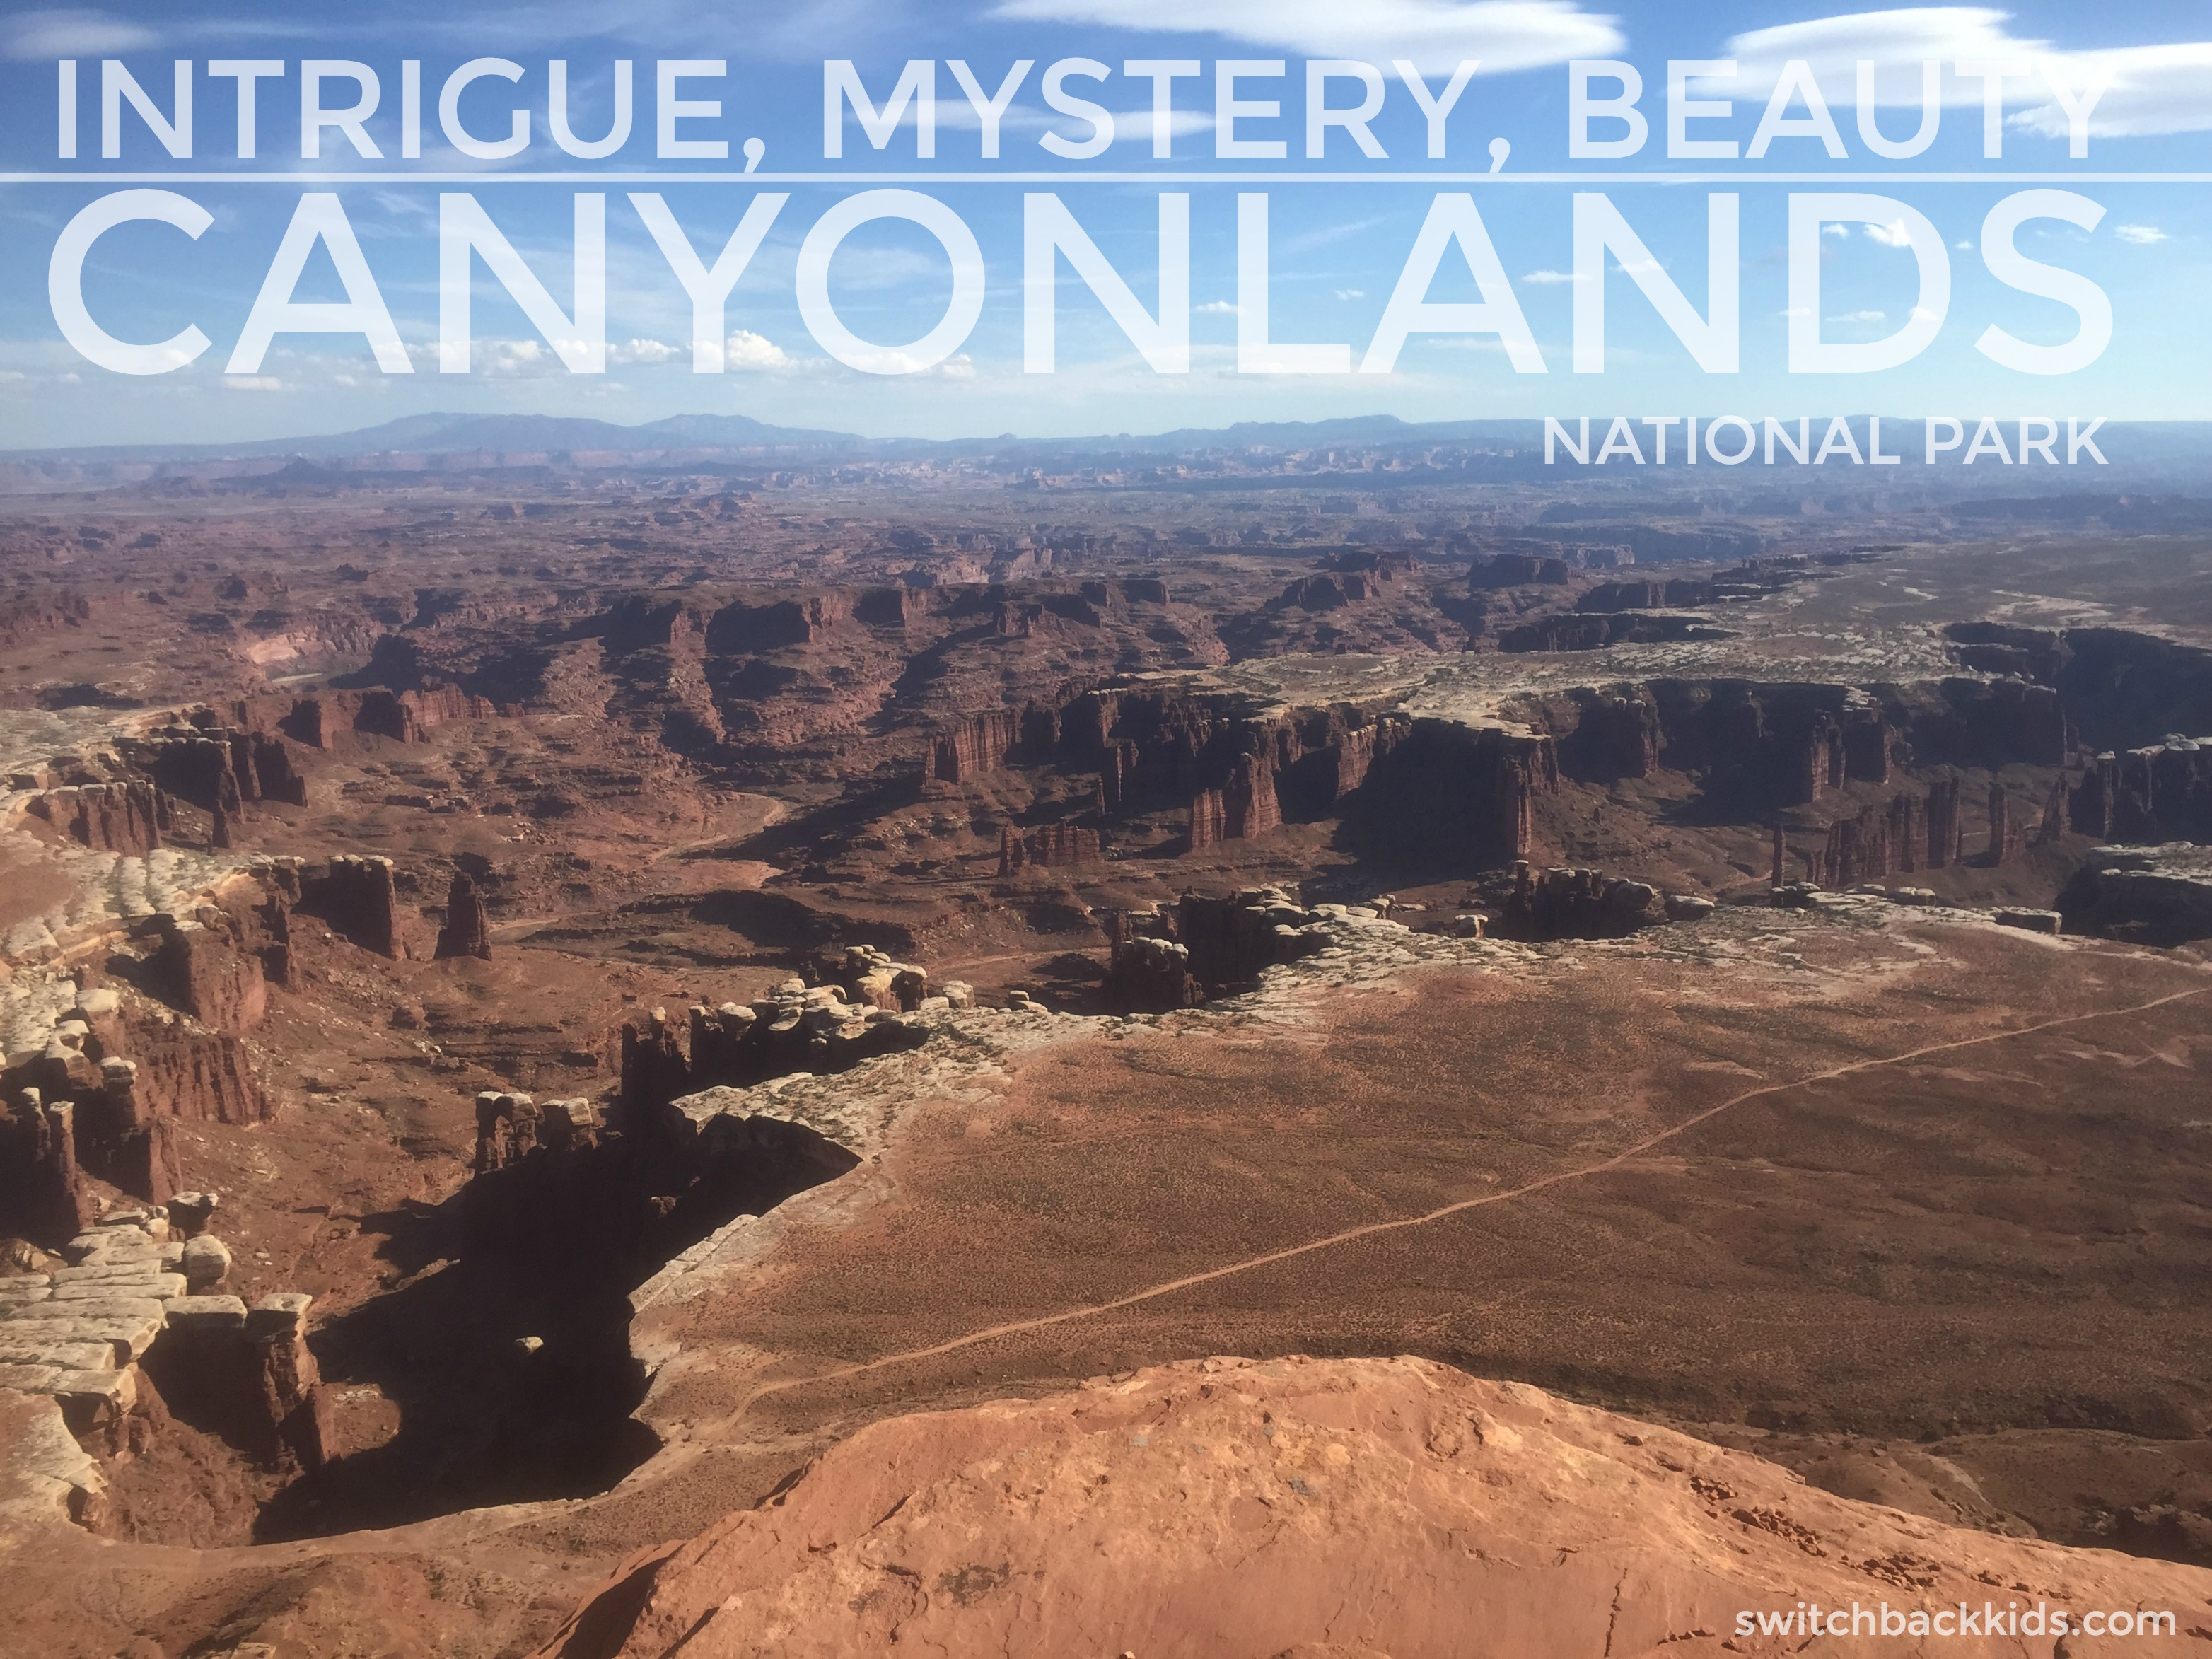 VIDEO: Canyonlands National Park